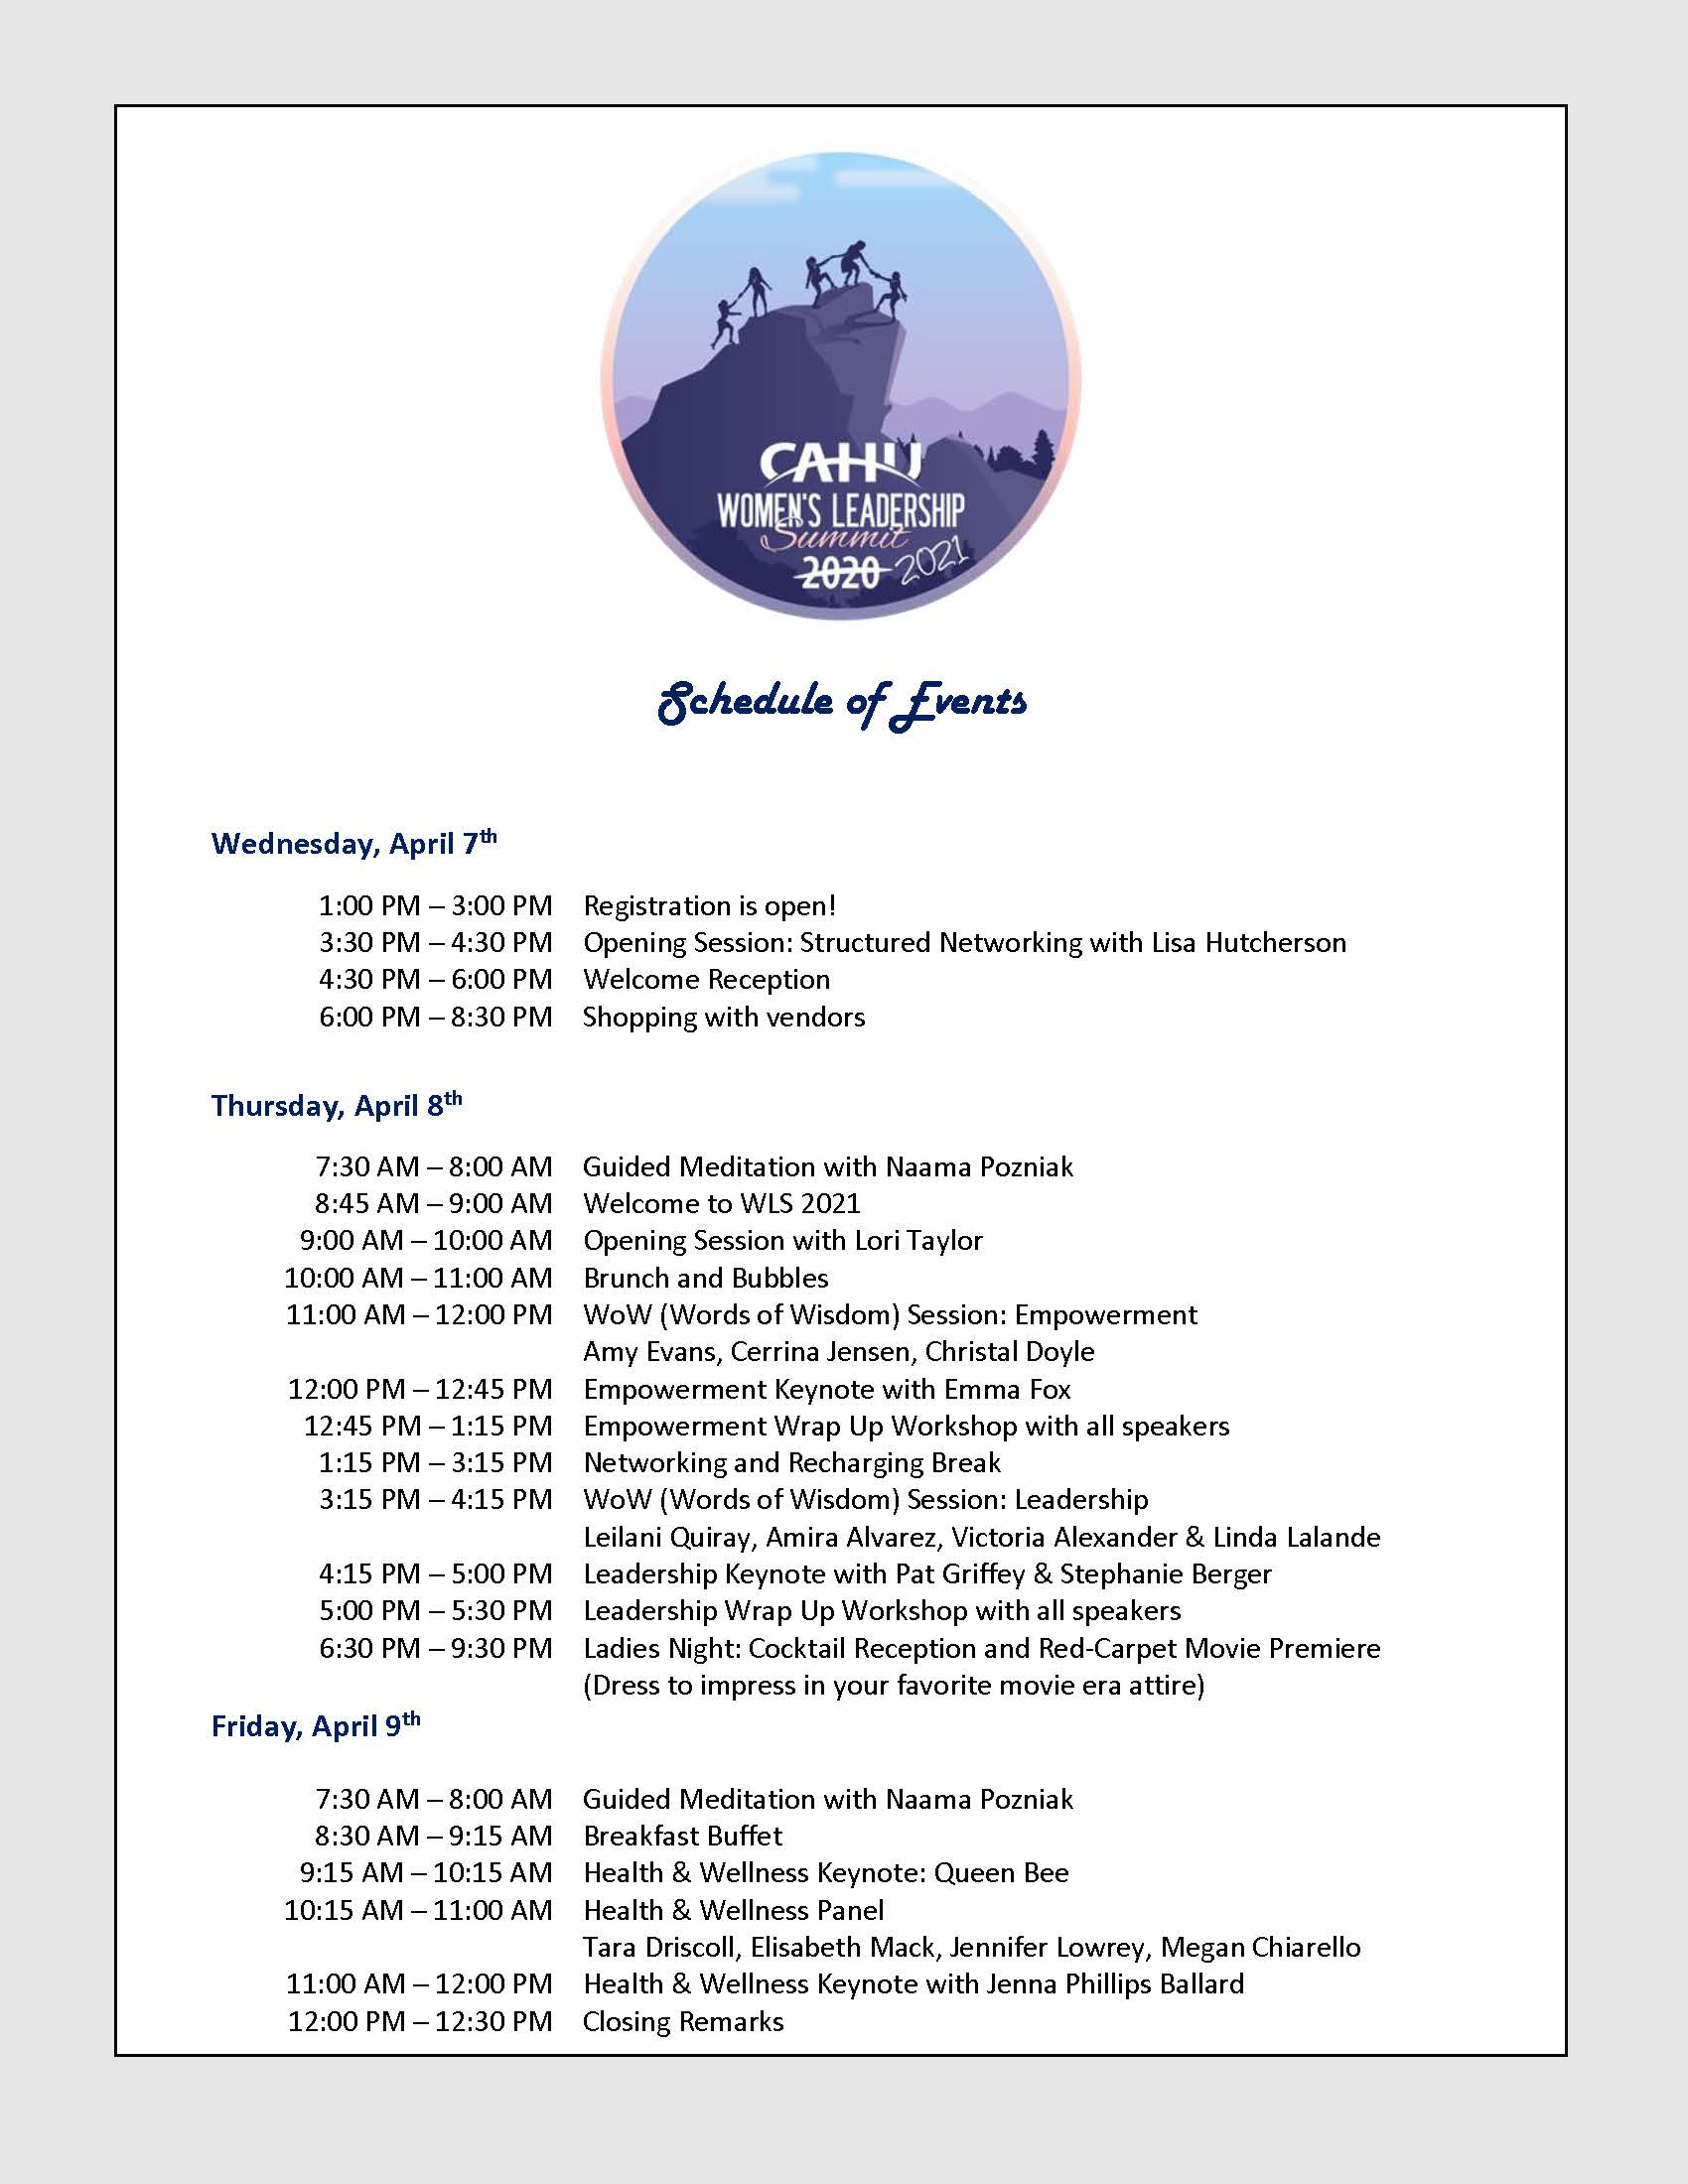 WLS 2021 Schedule of Events